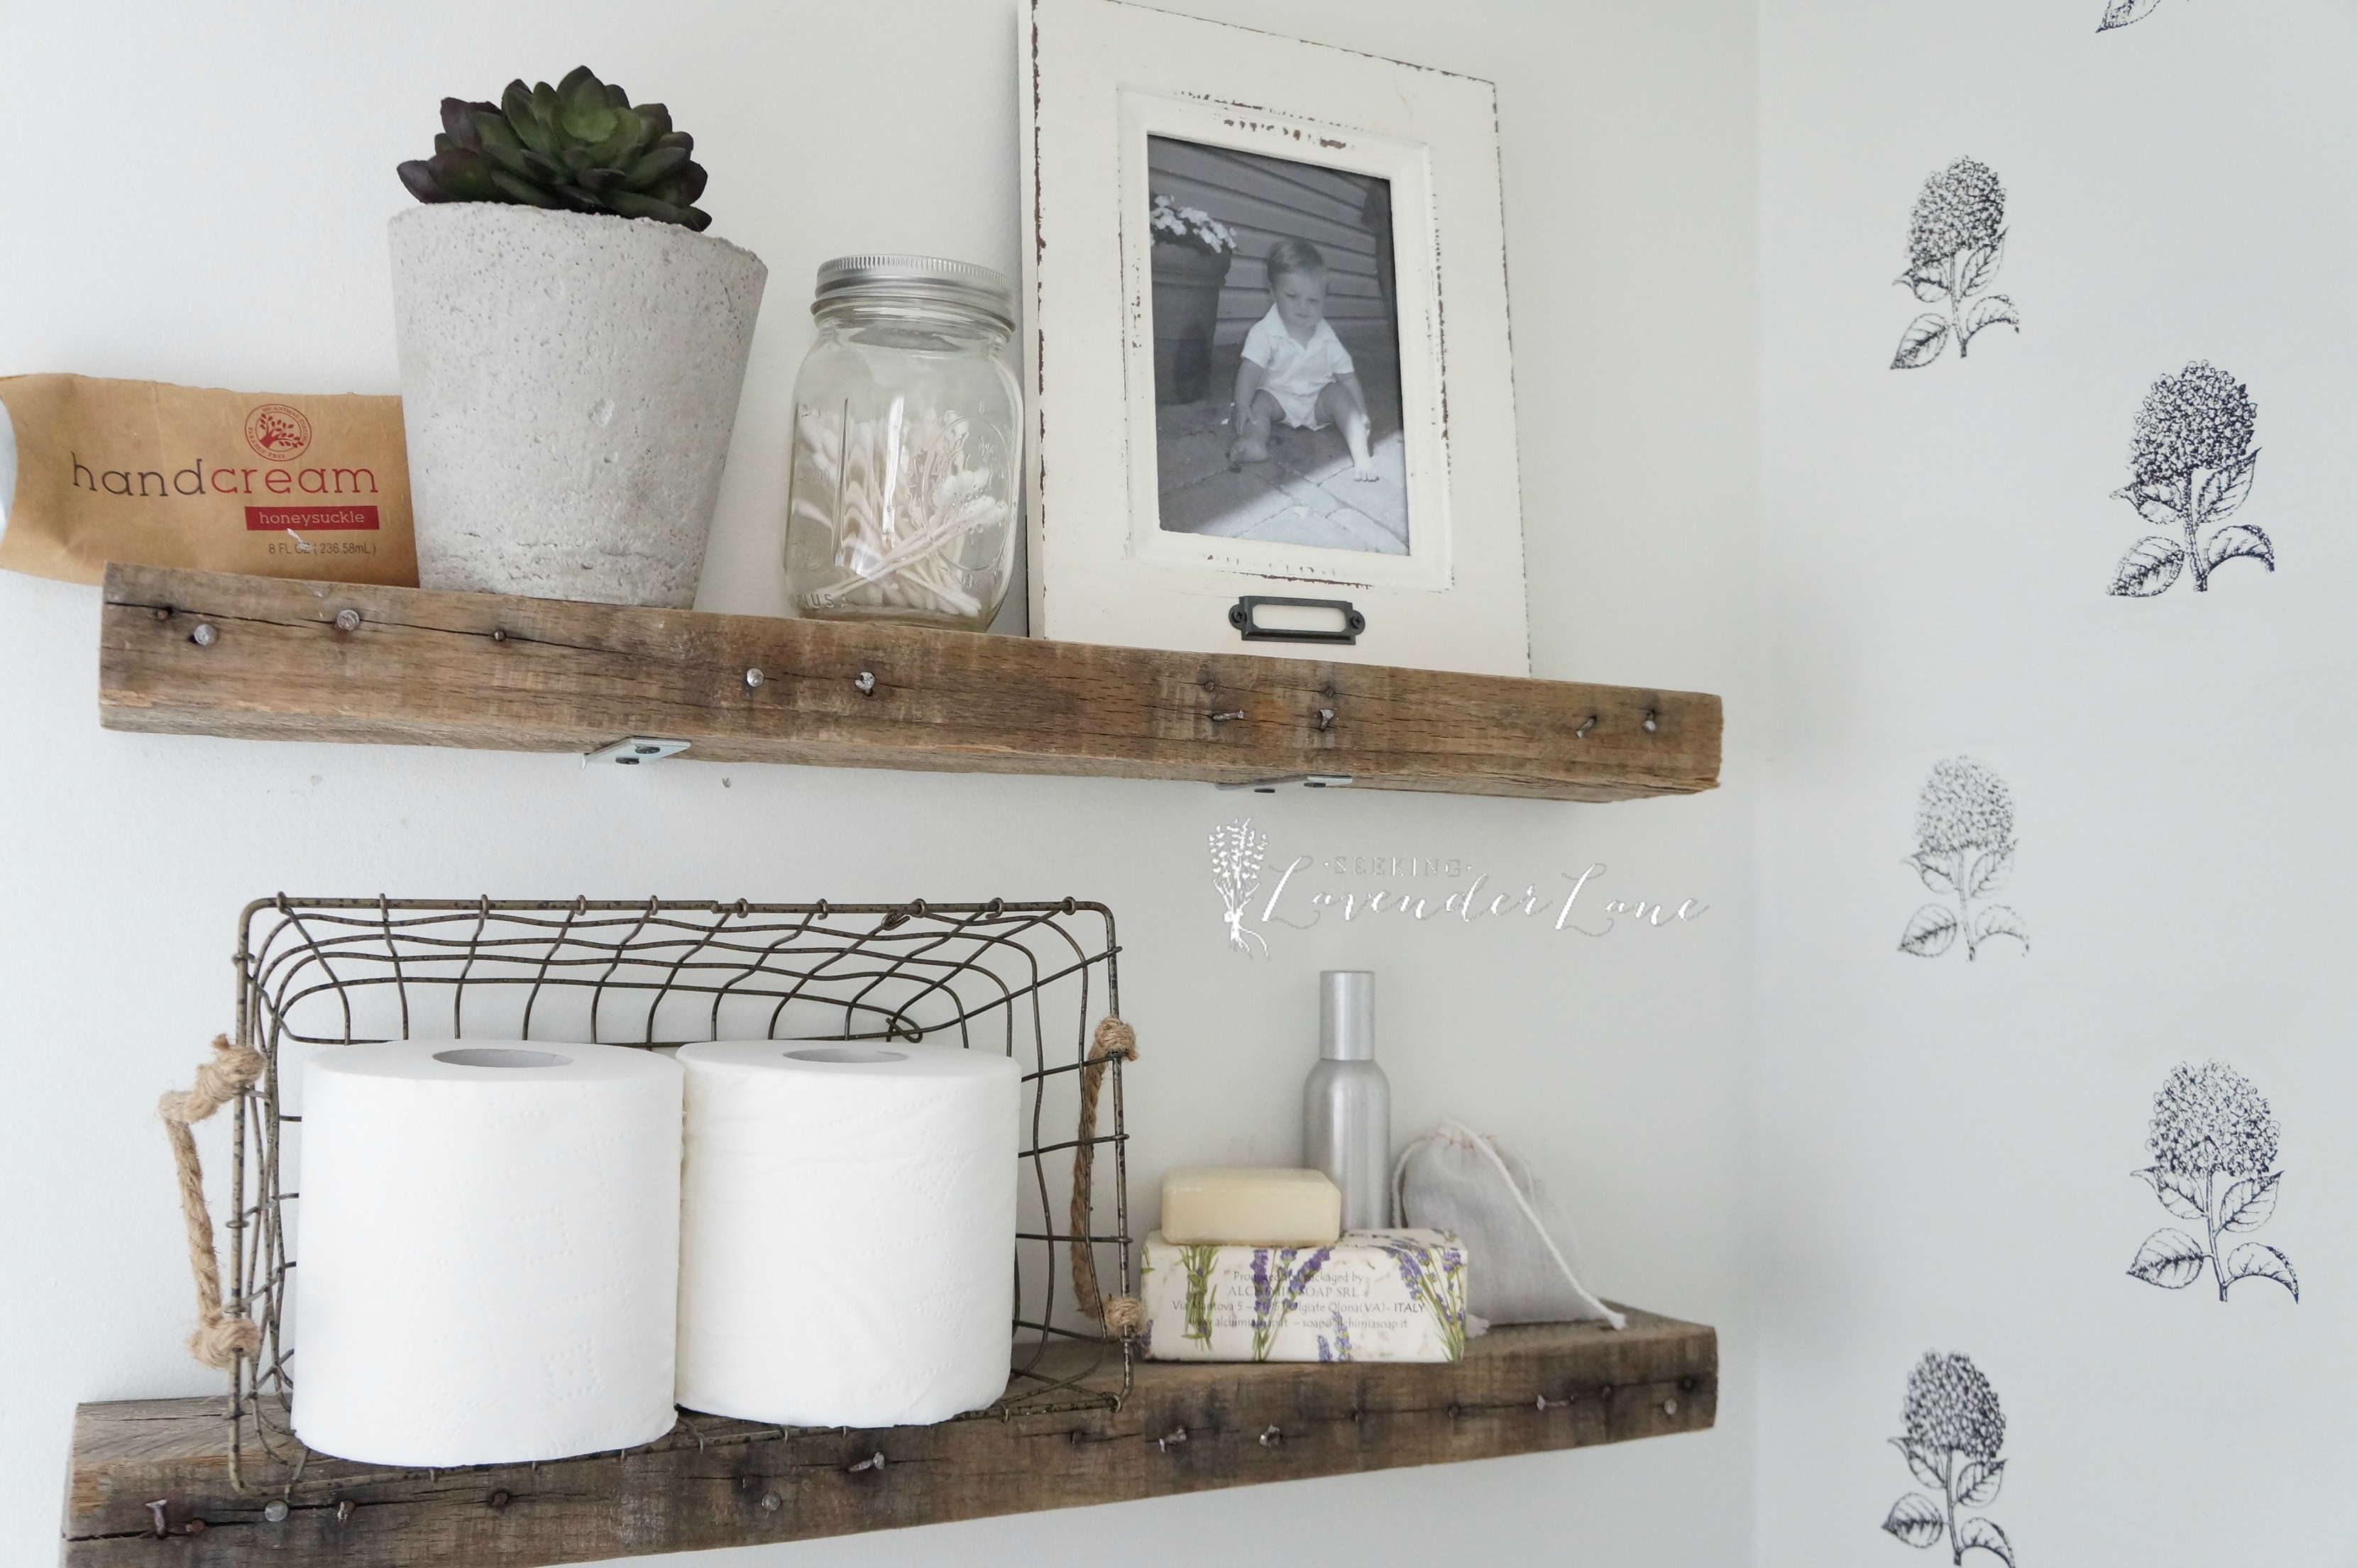 diy rustic bathroom shelves seeking lavendar lane pallet wood floating for distressed white shelf chunky fireplace mantels study desk and bookshelf hang wall without damage corner